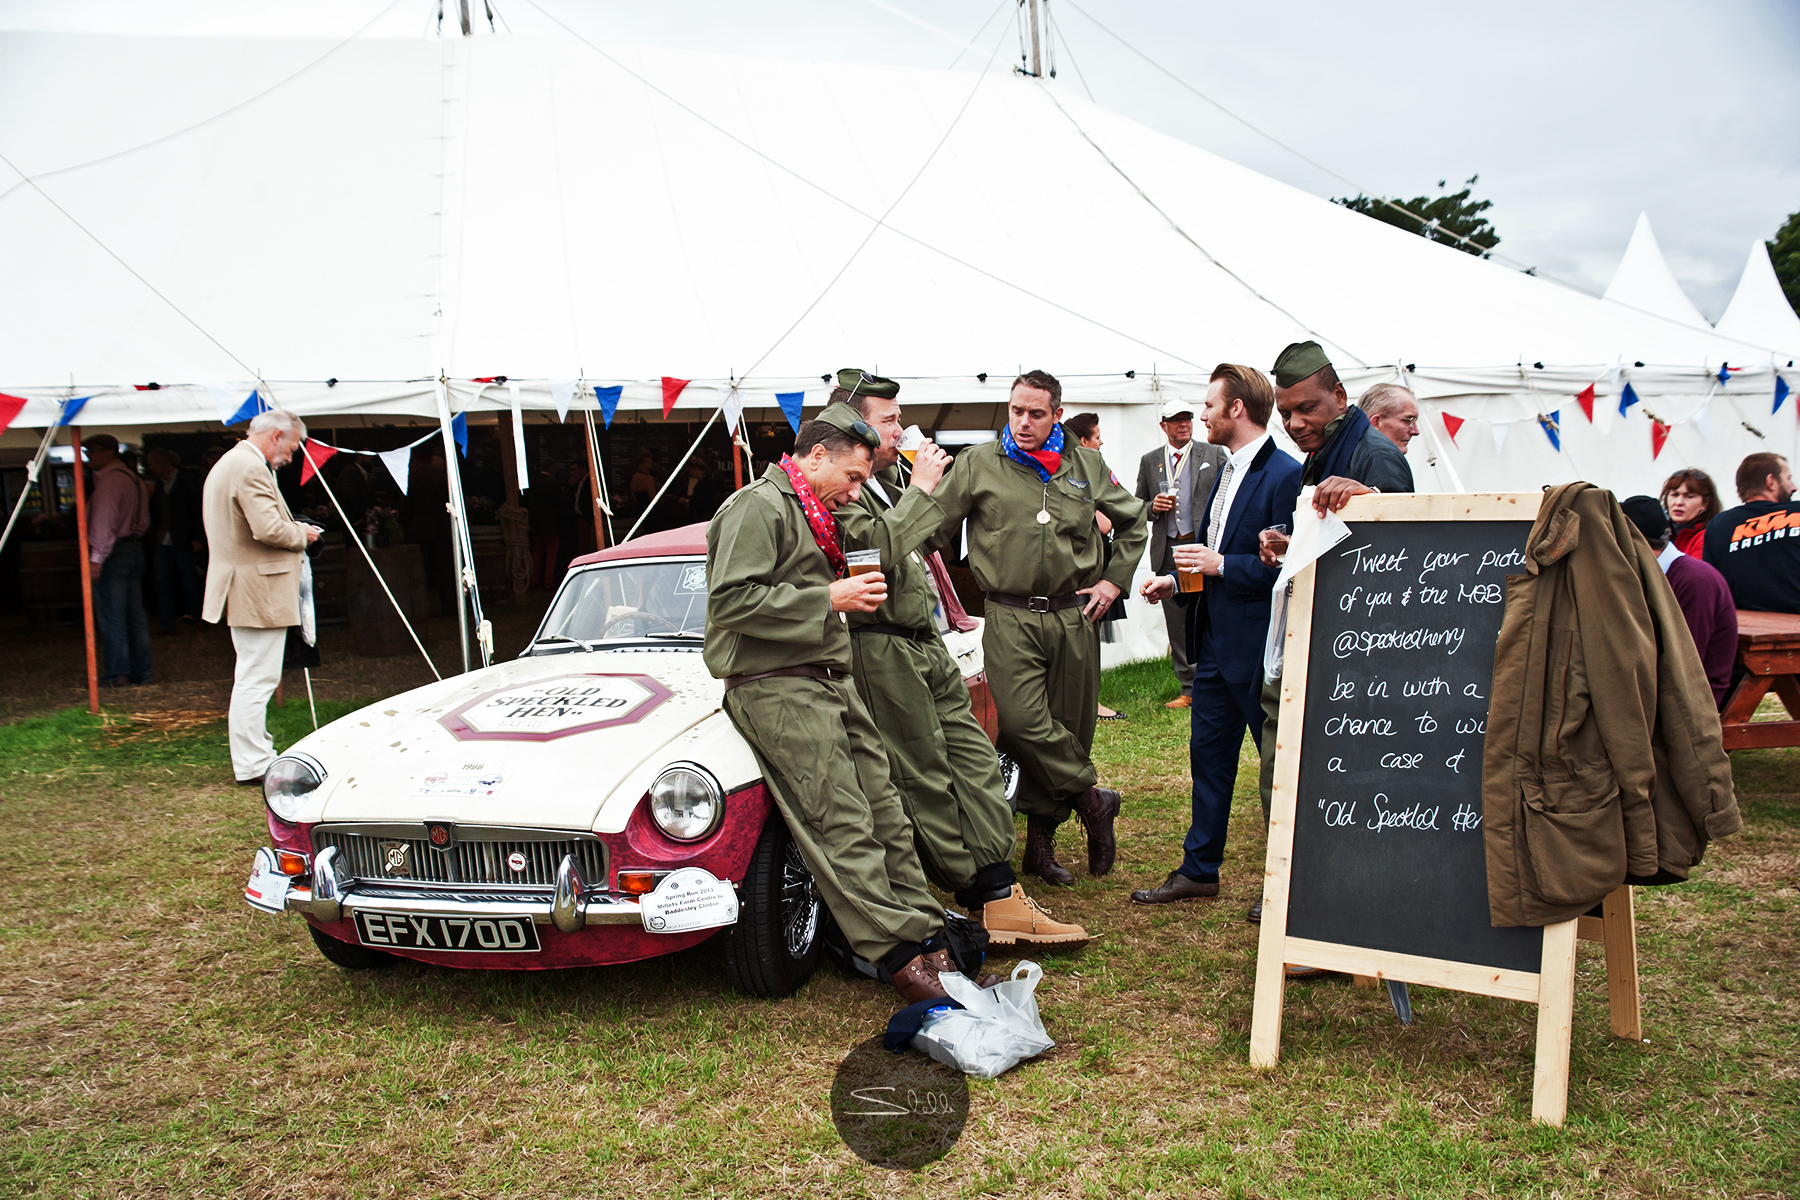 Stella Scordellis Goodwood Revival 2015 6 Watermarked.jpg